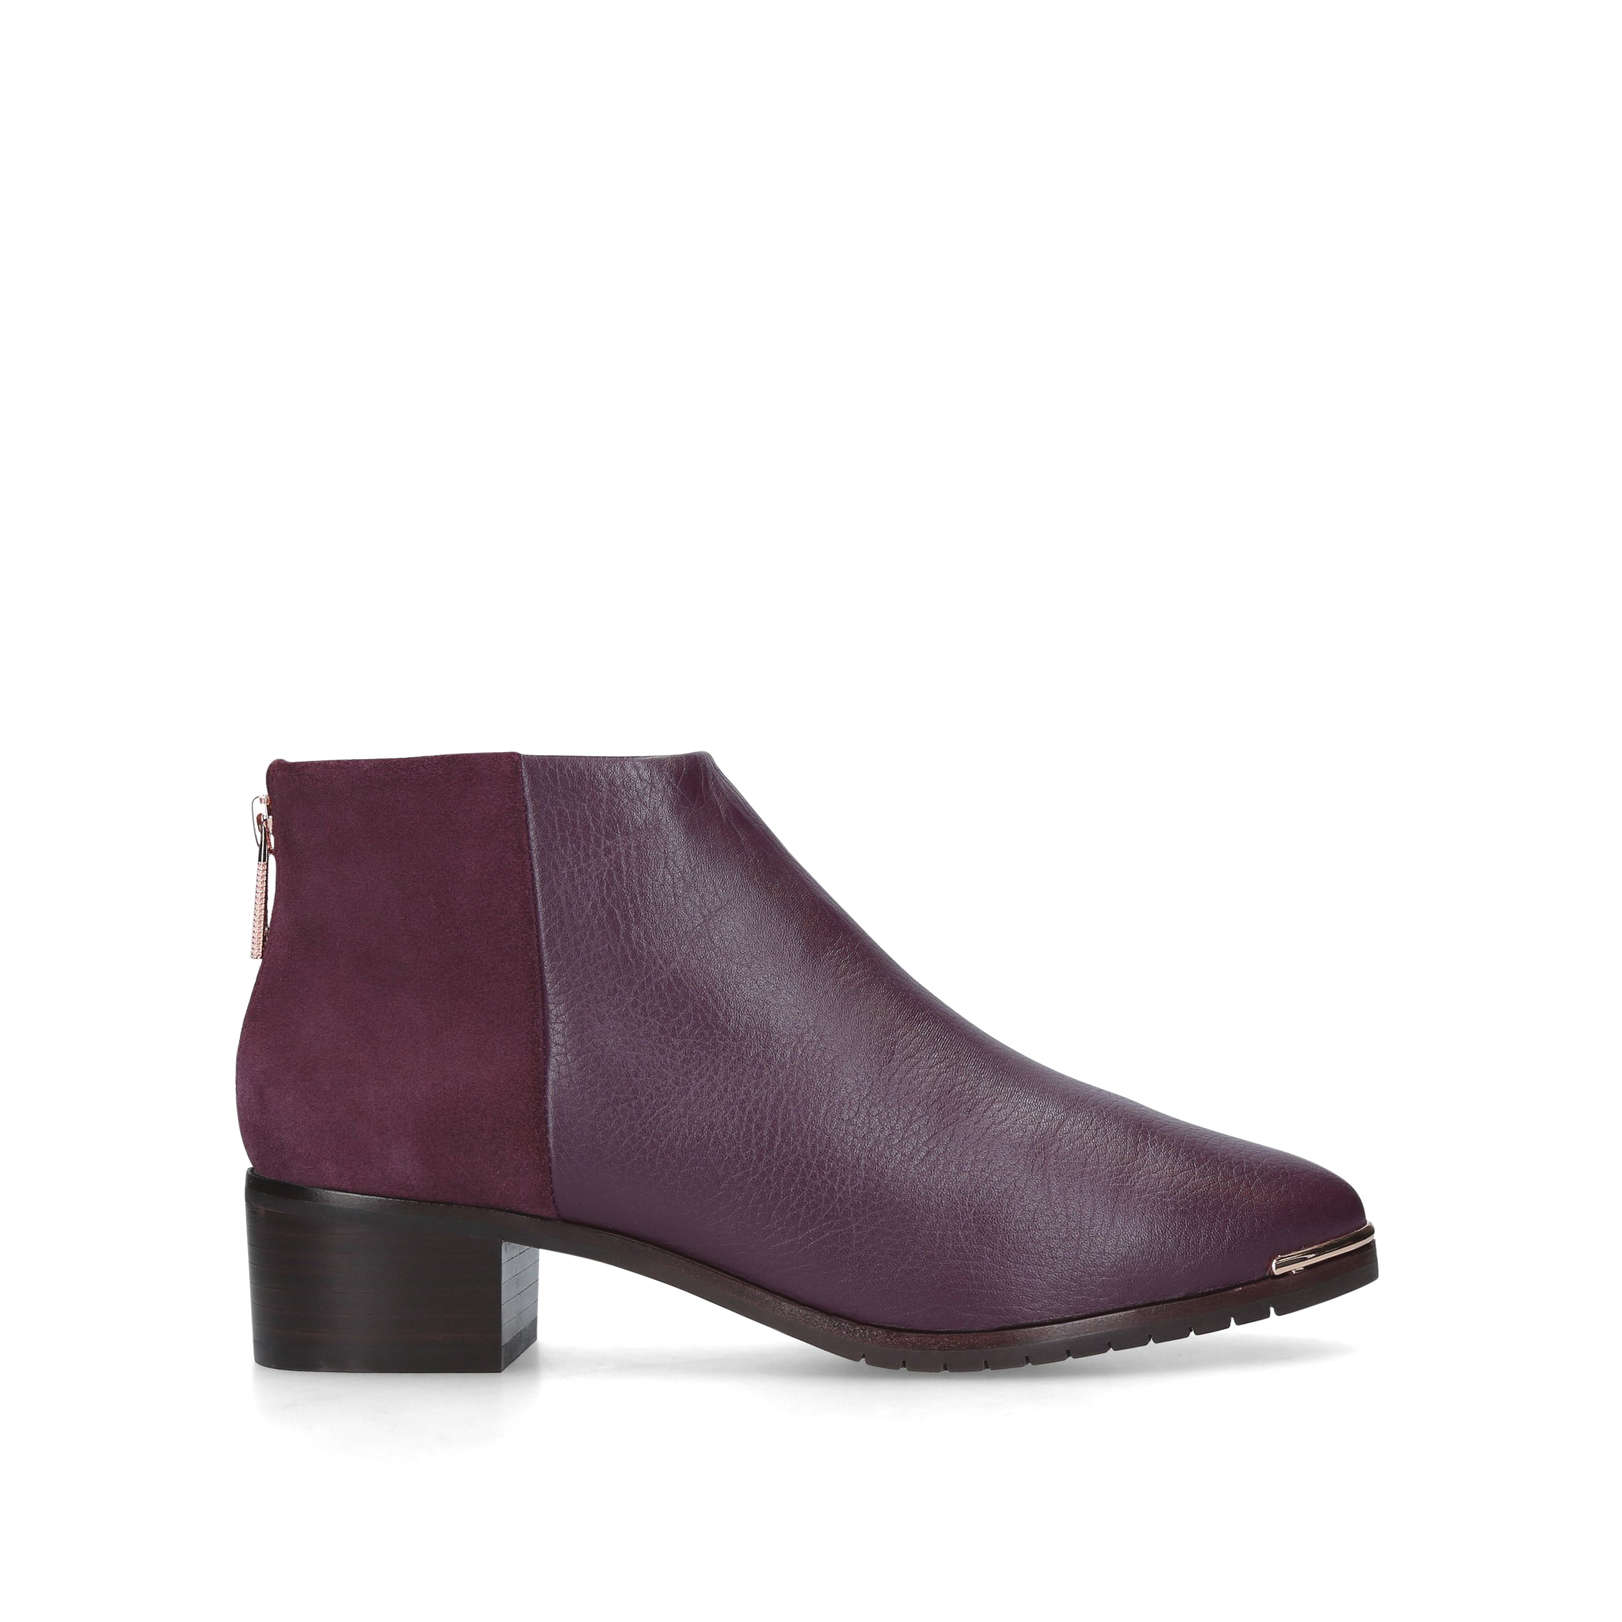 SASYBELL - TED BAKER Ankle Boots